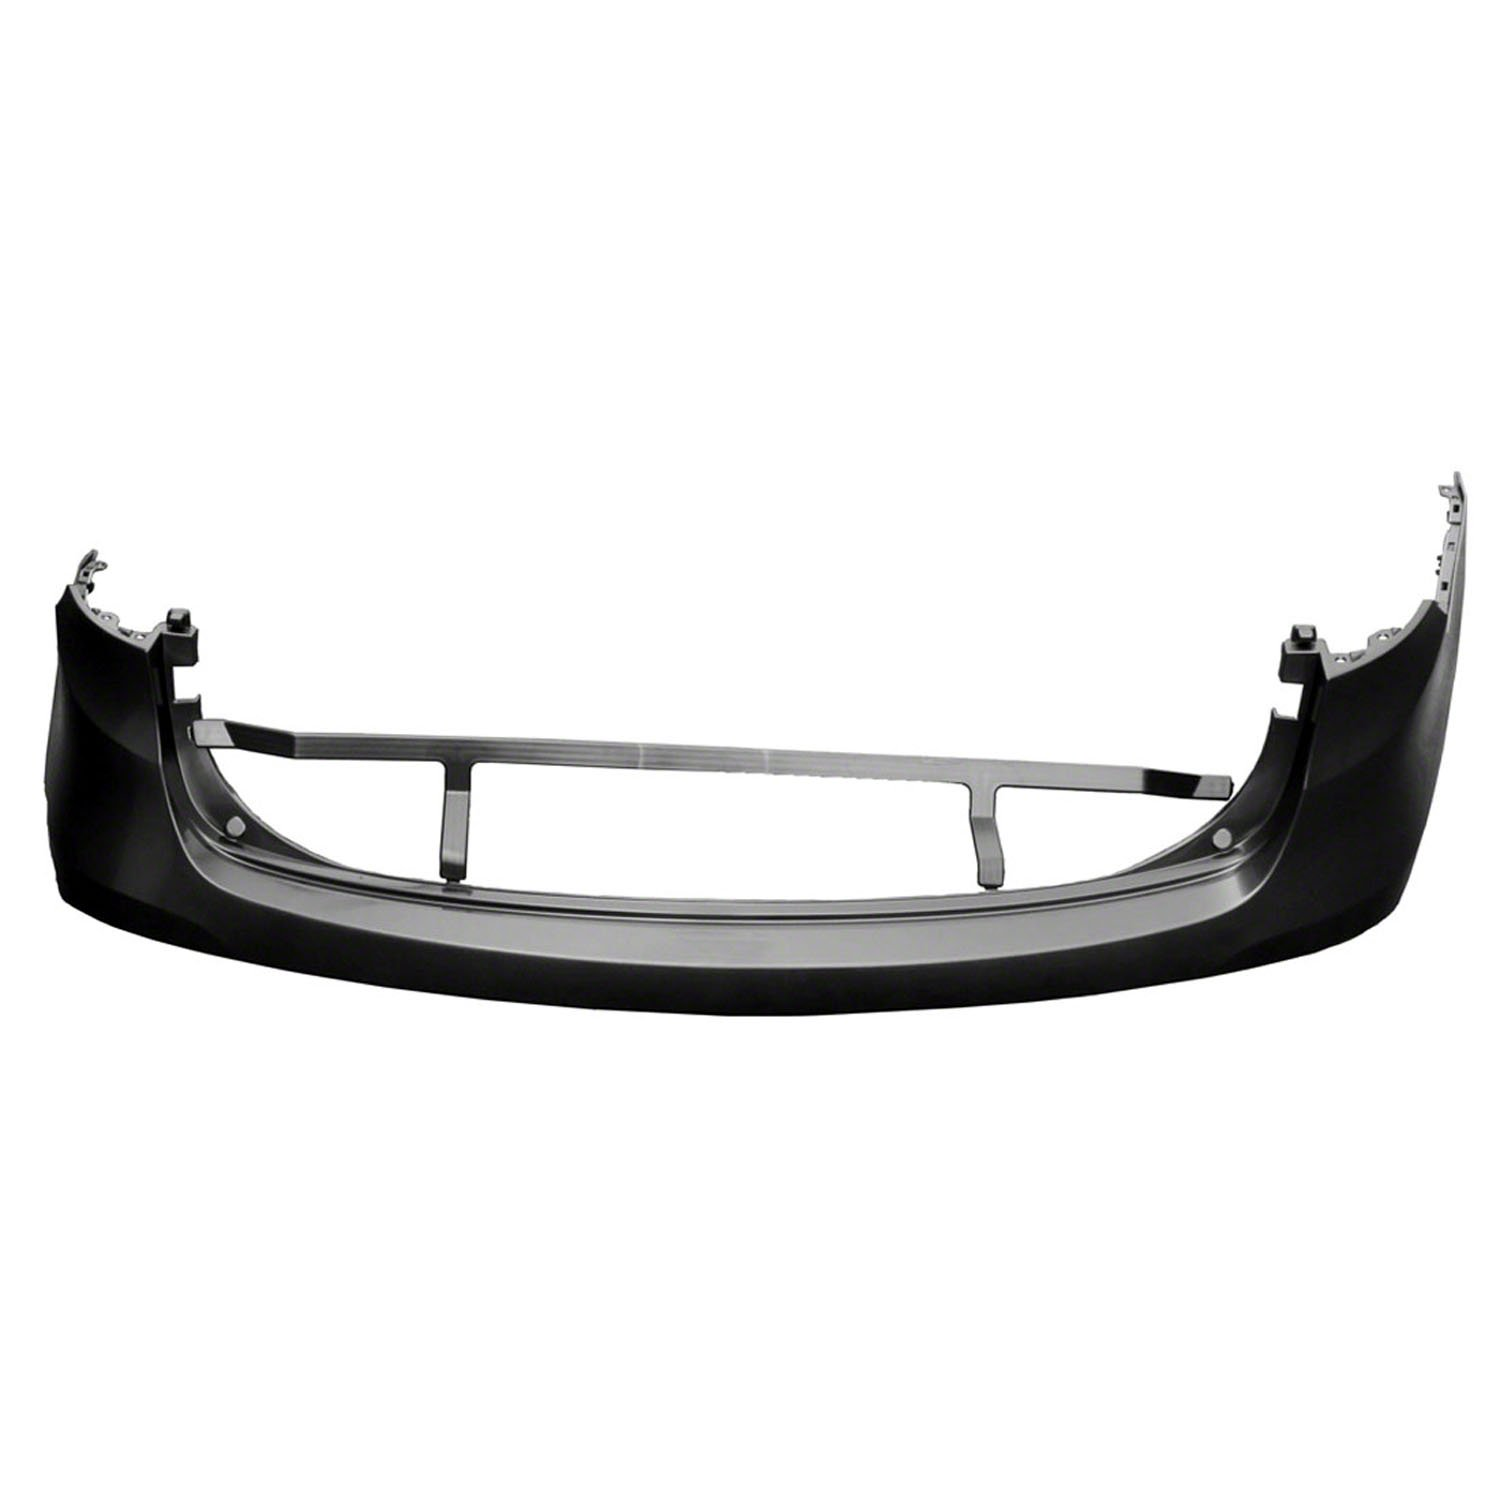 PartsChannel OE Replacement Bumper Cover Hyundai Santa FE 6-7 Seater 2013-2015 HY1114101R